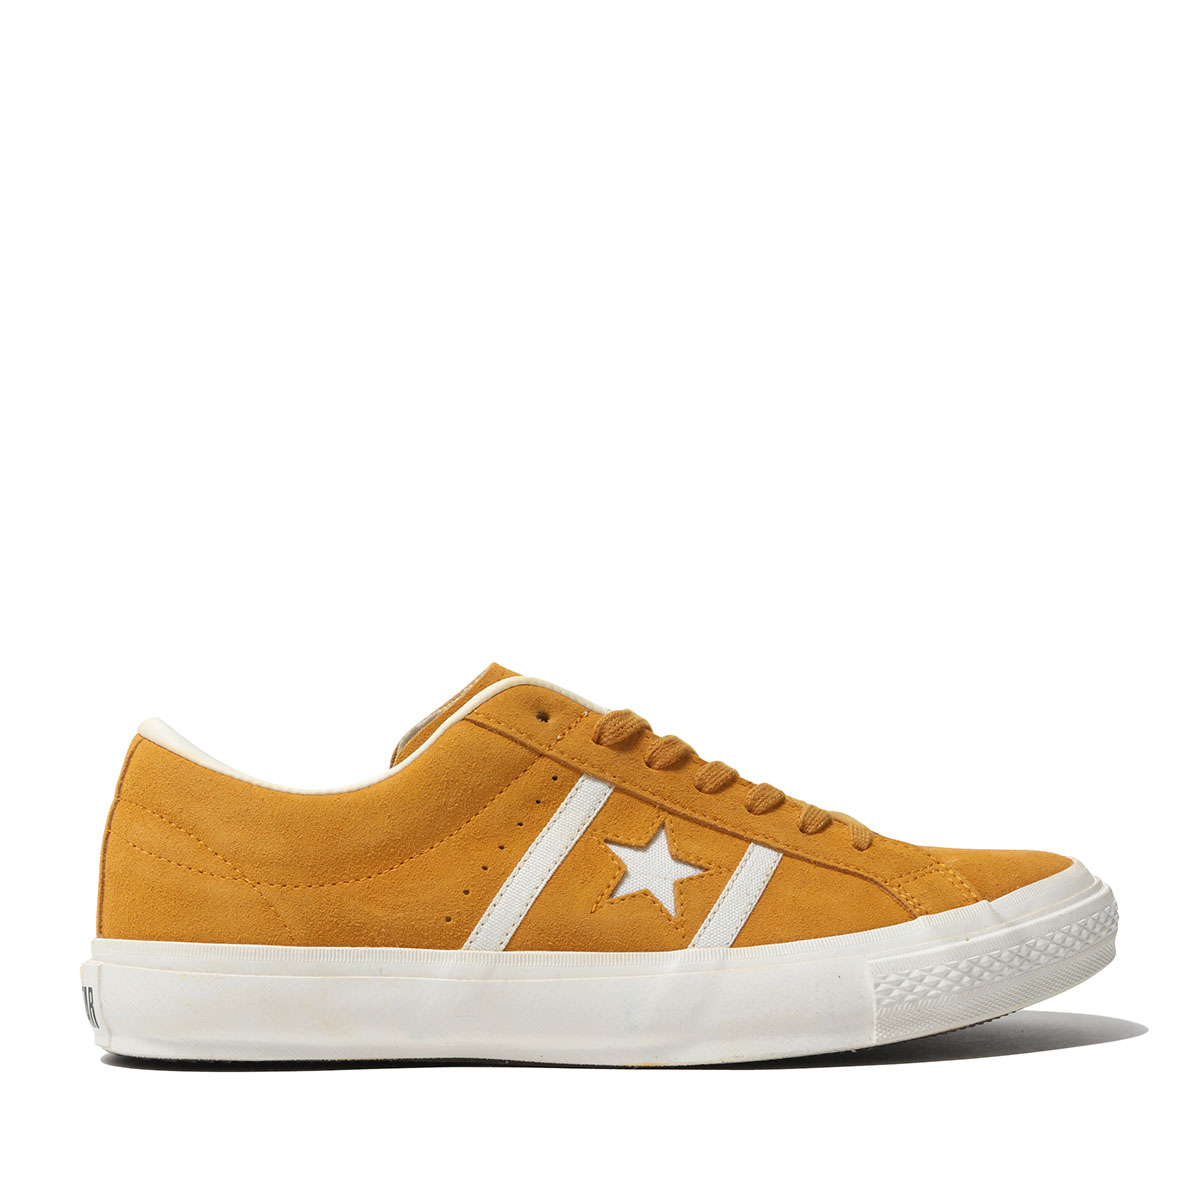 CONVERSE STAR&BARS SUEDE TEAMCOLORS (YELLOW) (Converse star & Byrds suede team color)